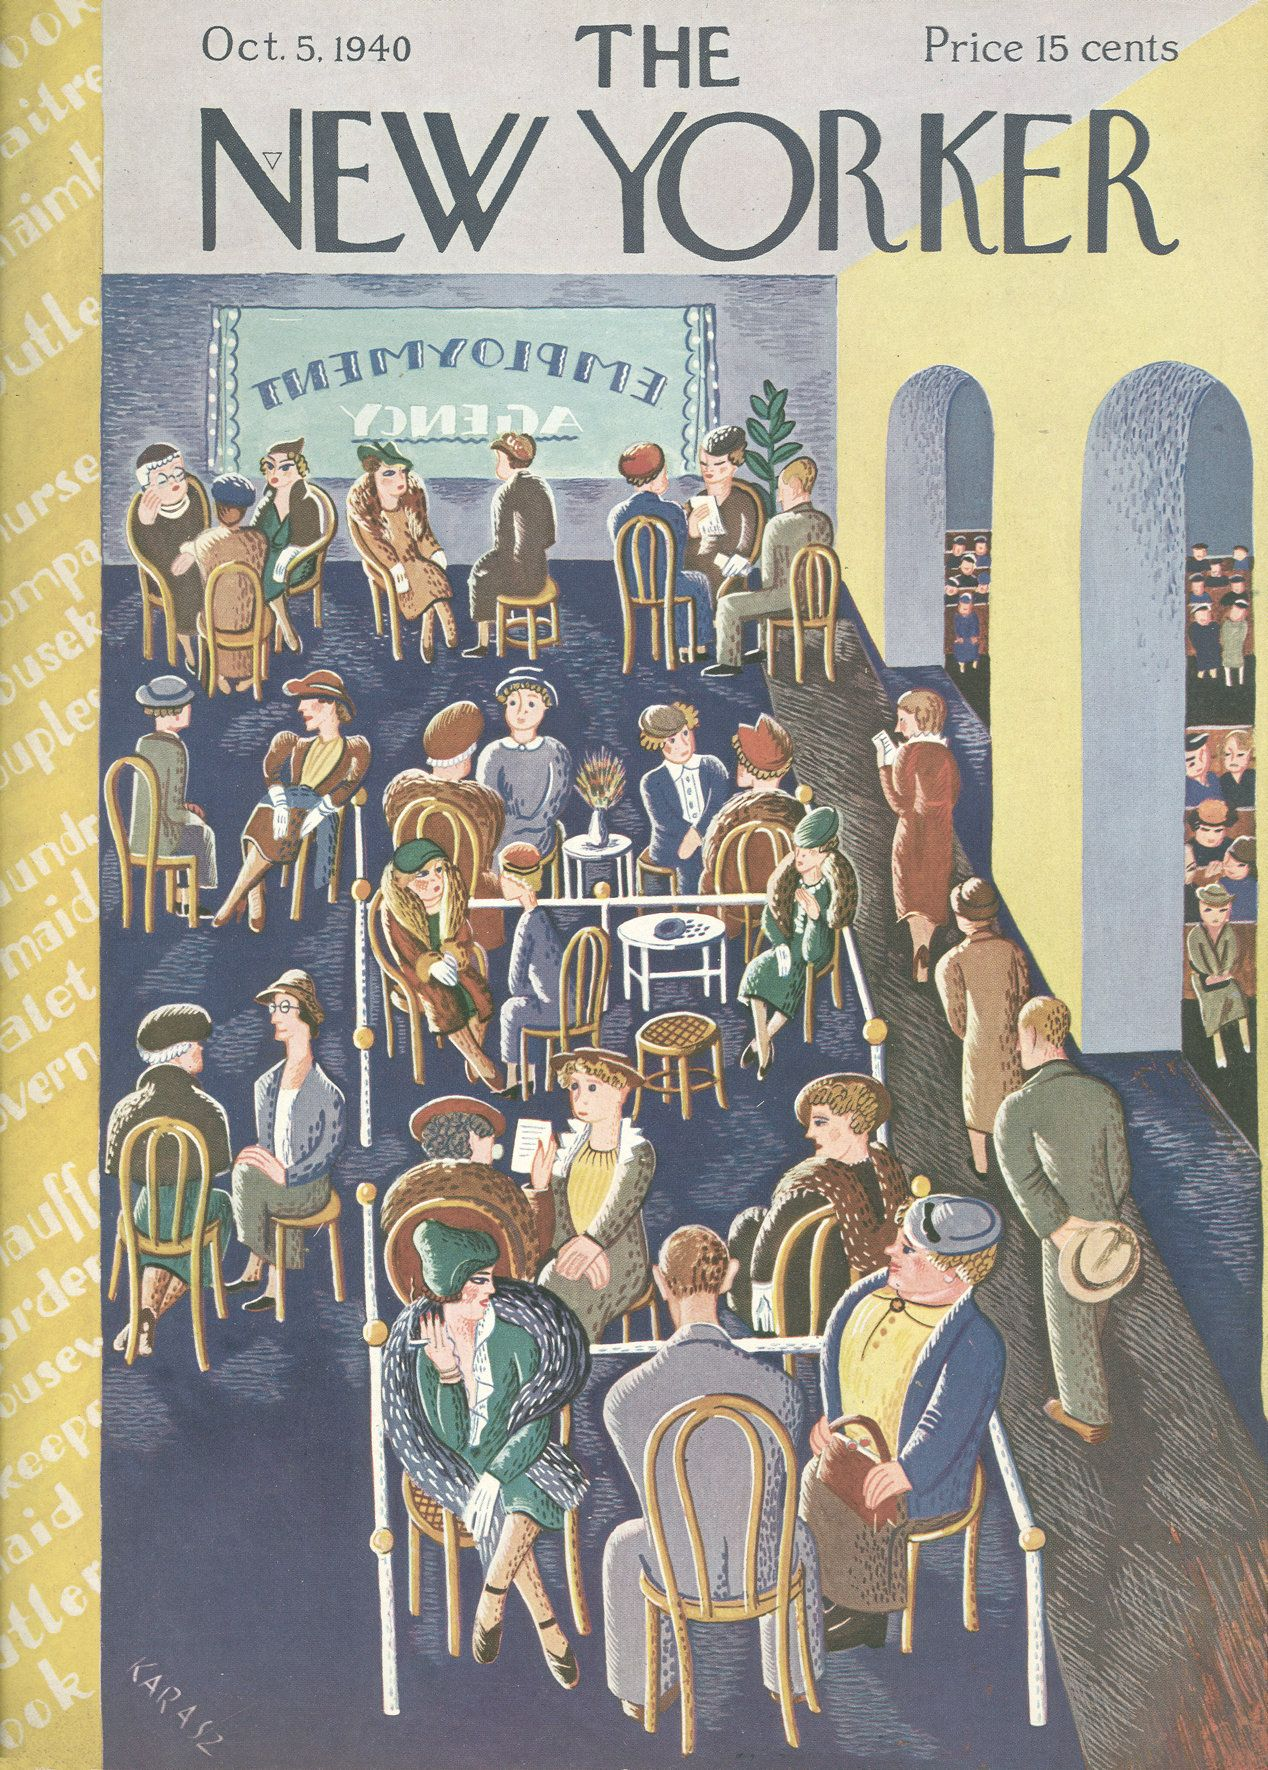 The New Yorker - Saturday, October 5, 1940 - Issue # 816 - Vol. 16 - N° 34 - Cover by : Ilonka Karasz